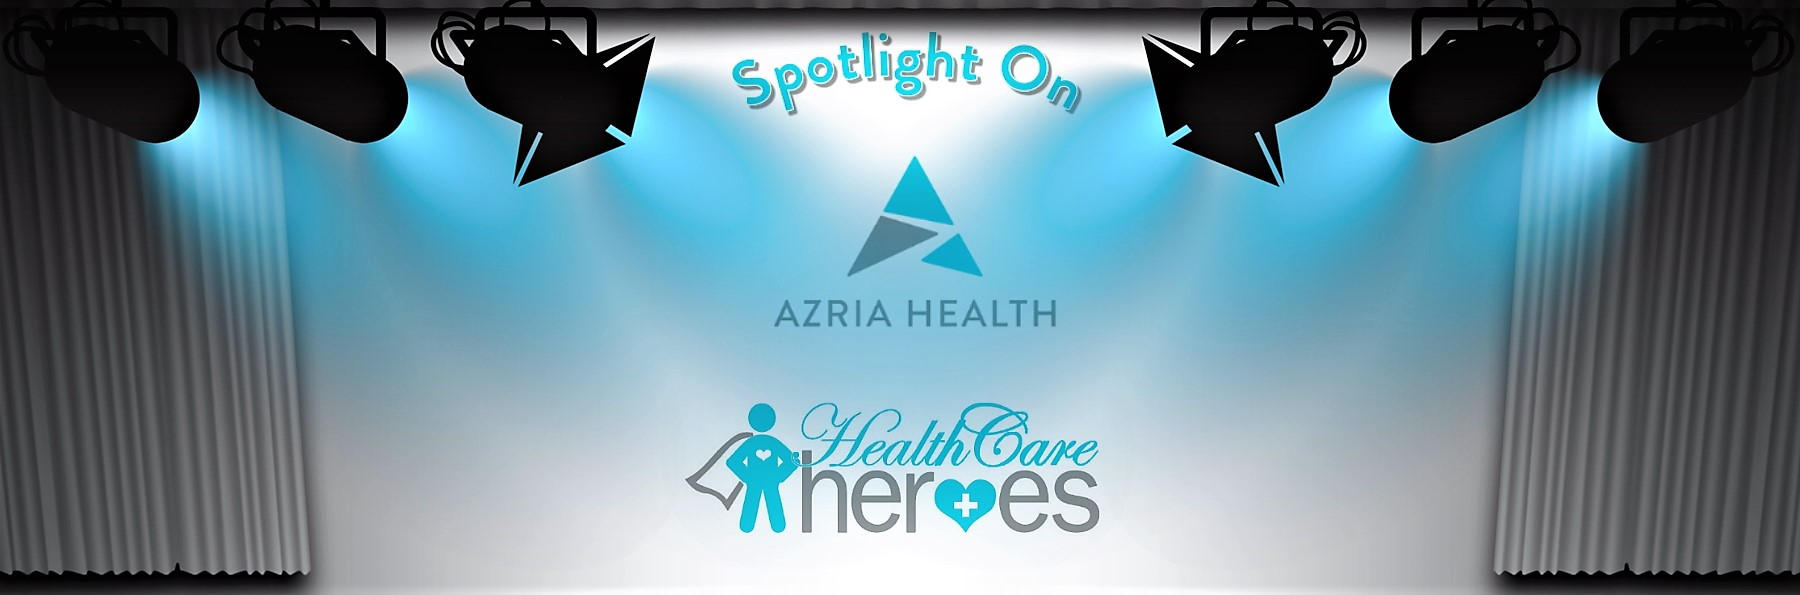 Spotlight On Azria Health Healthcare Heroes Banner